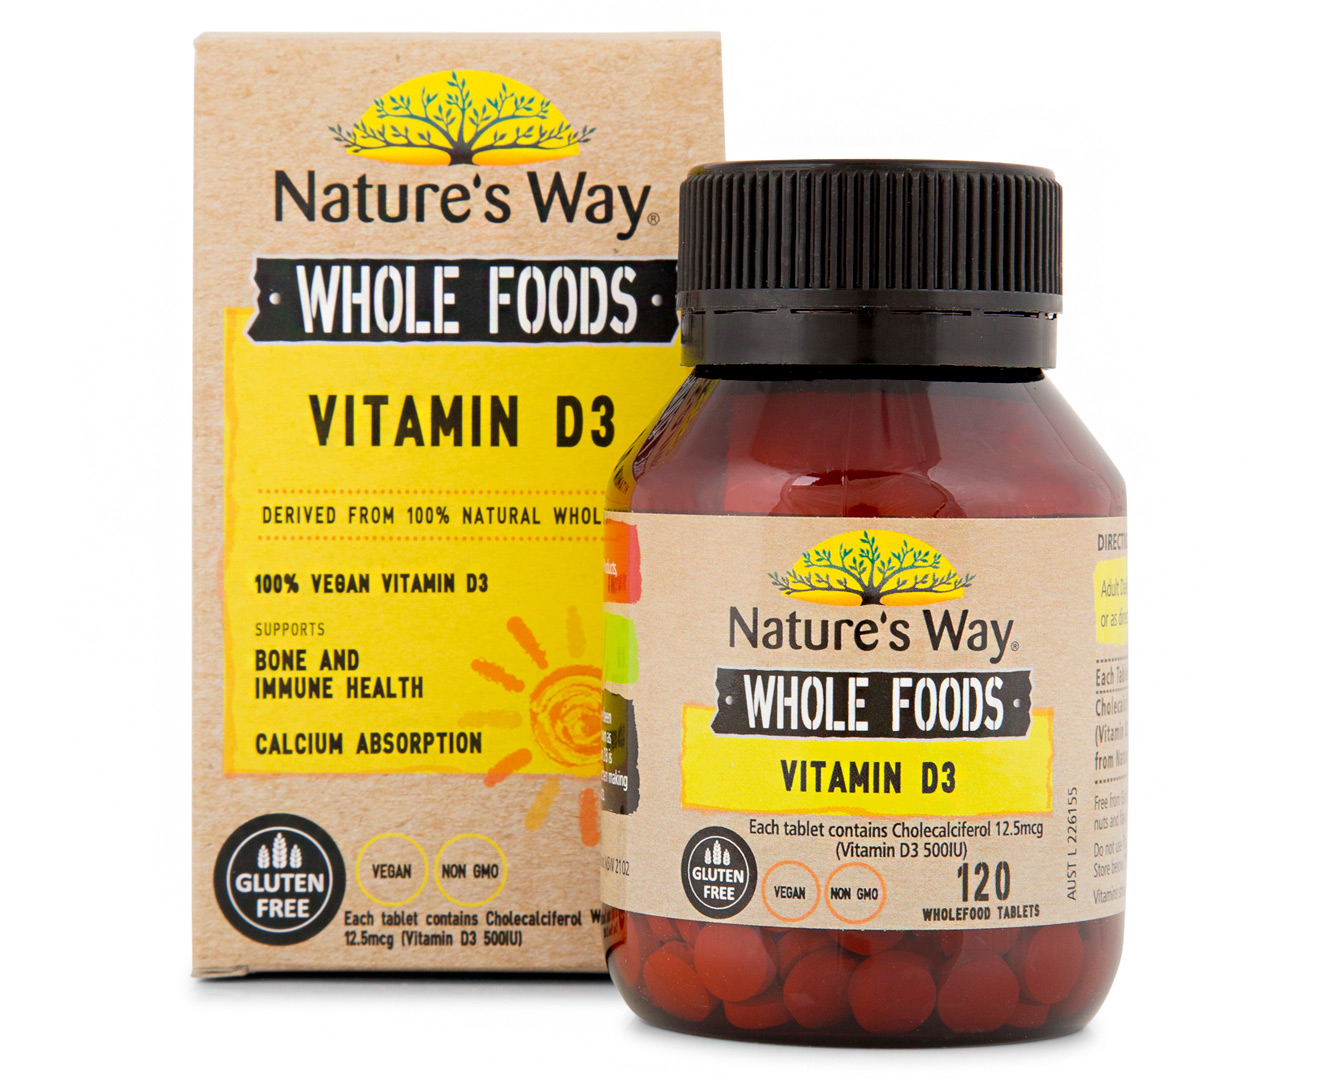 Whole foods vitamin d : Noodles and company reviews